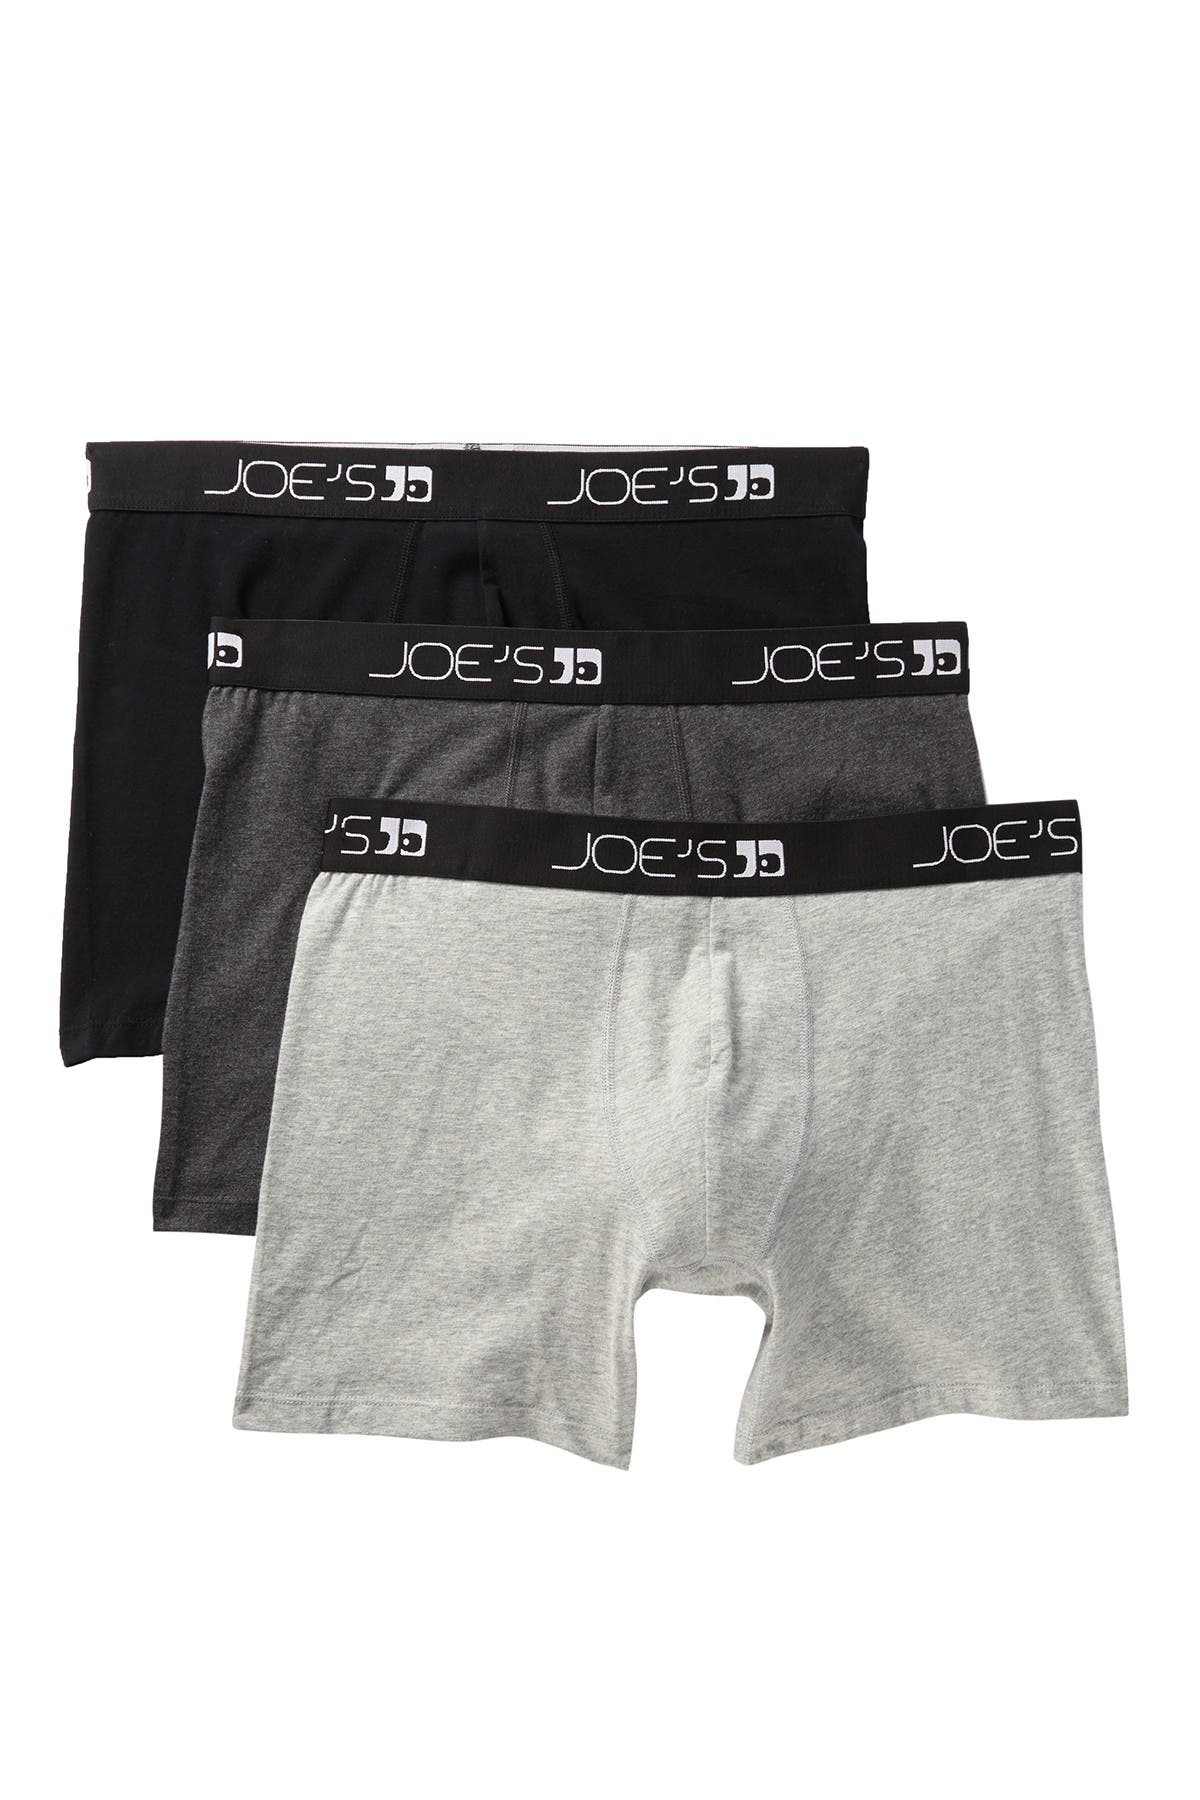 Image of Joe's Jeans Cotton Blend Boxer Briefs - Pack of 3